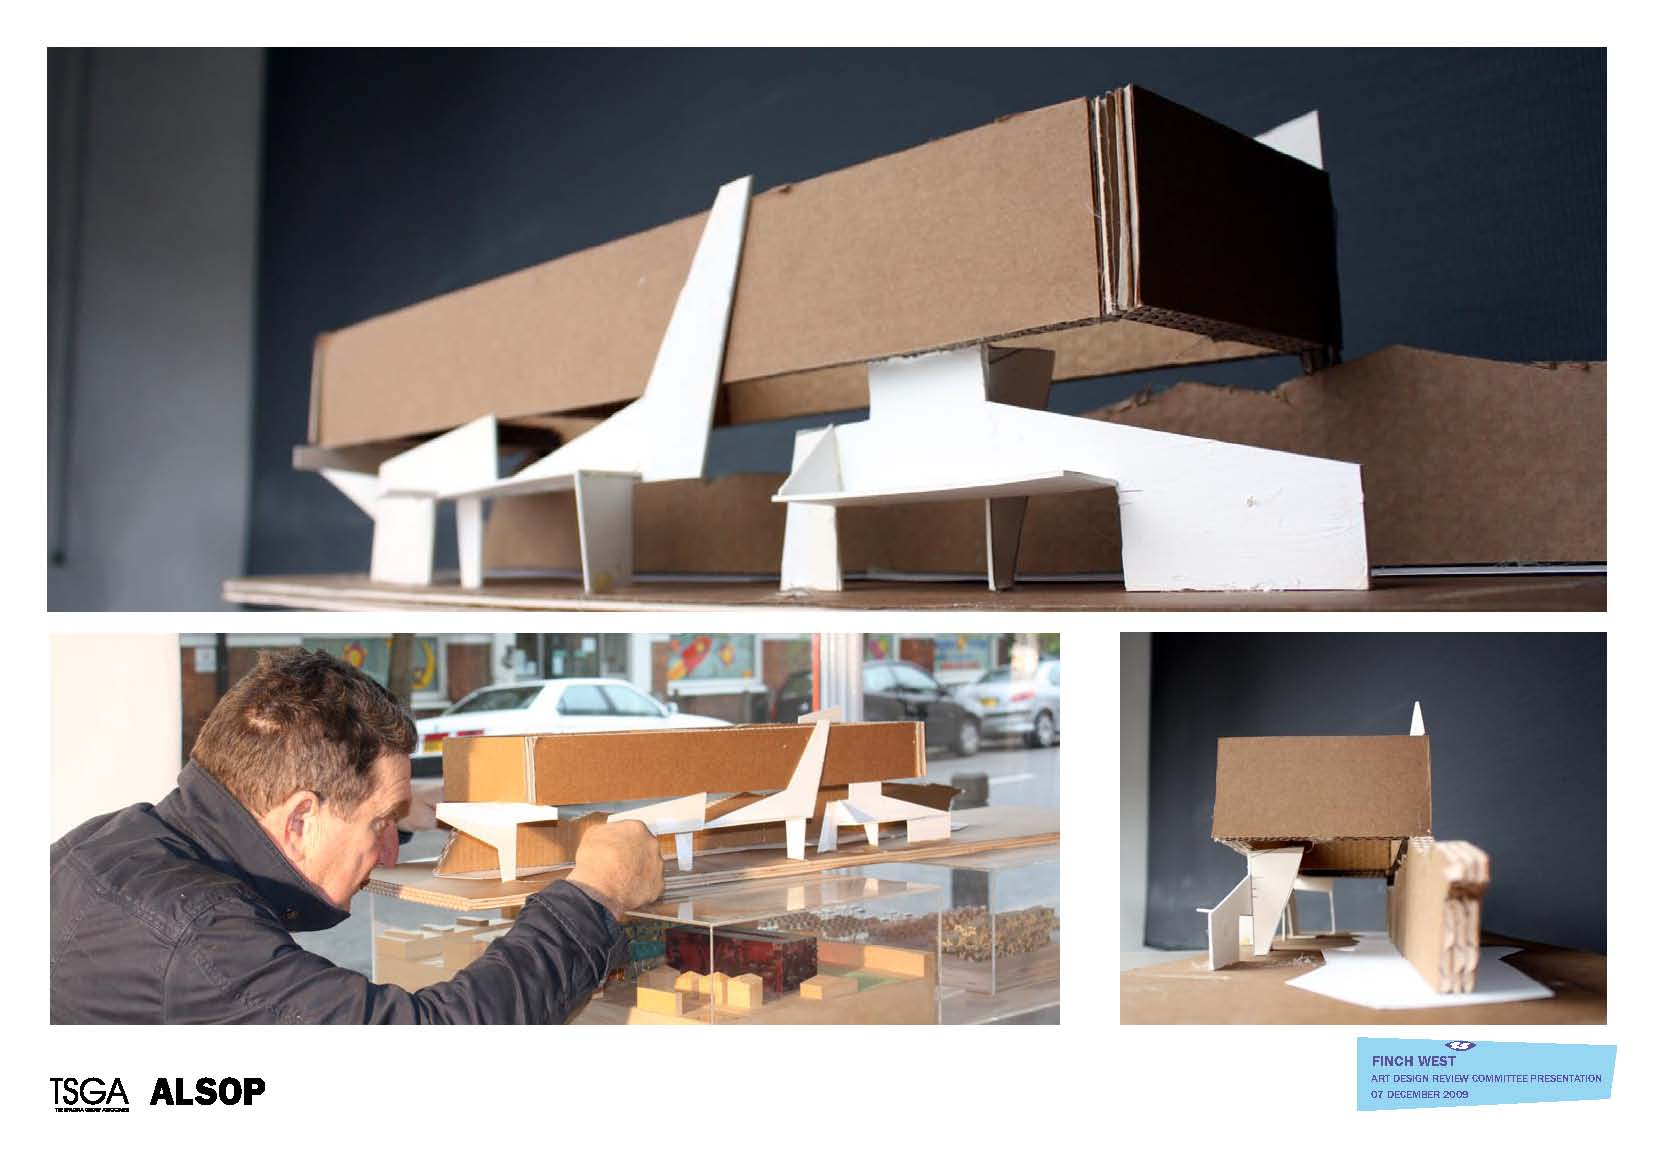 Finch West Station Architectural Model